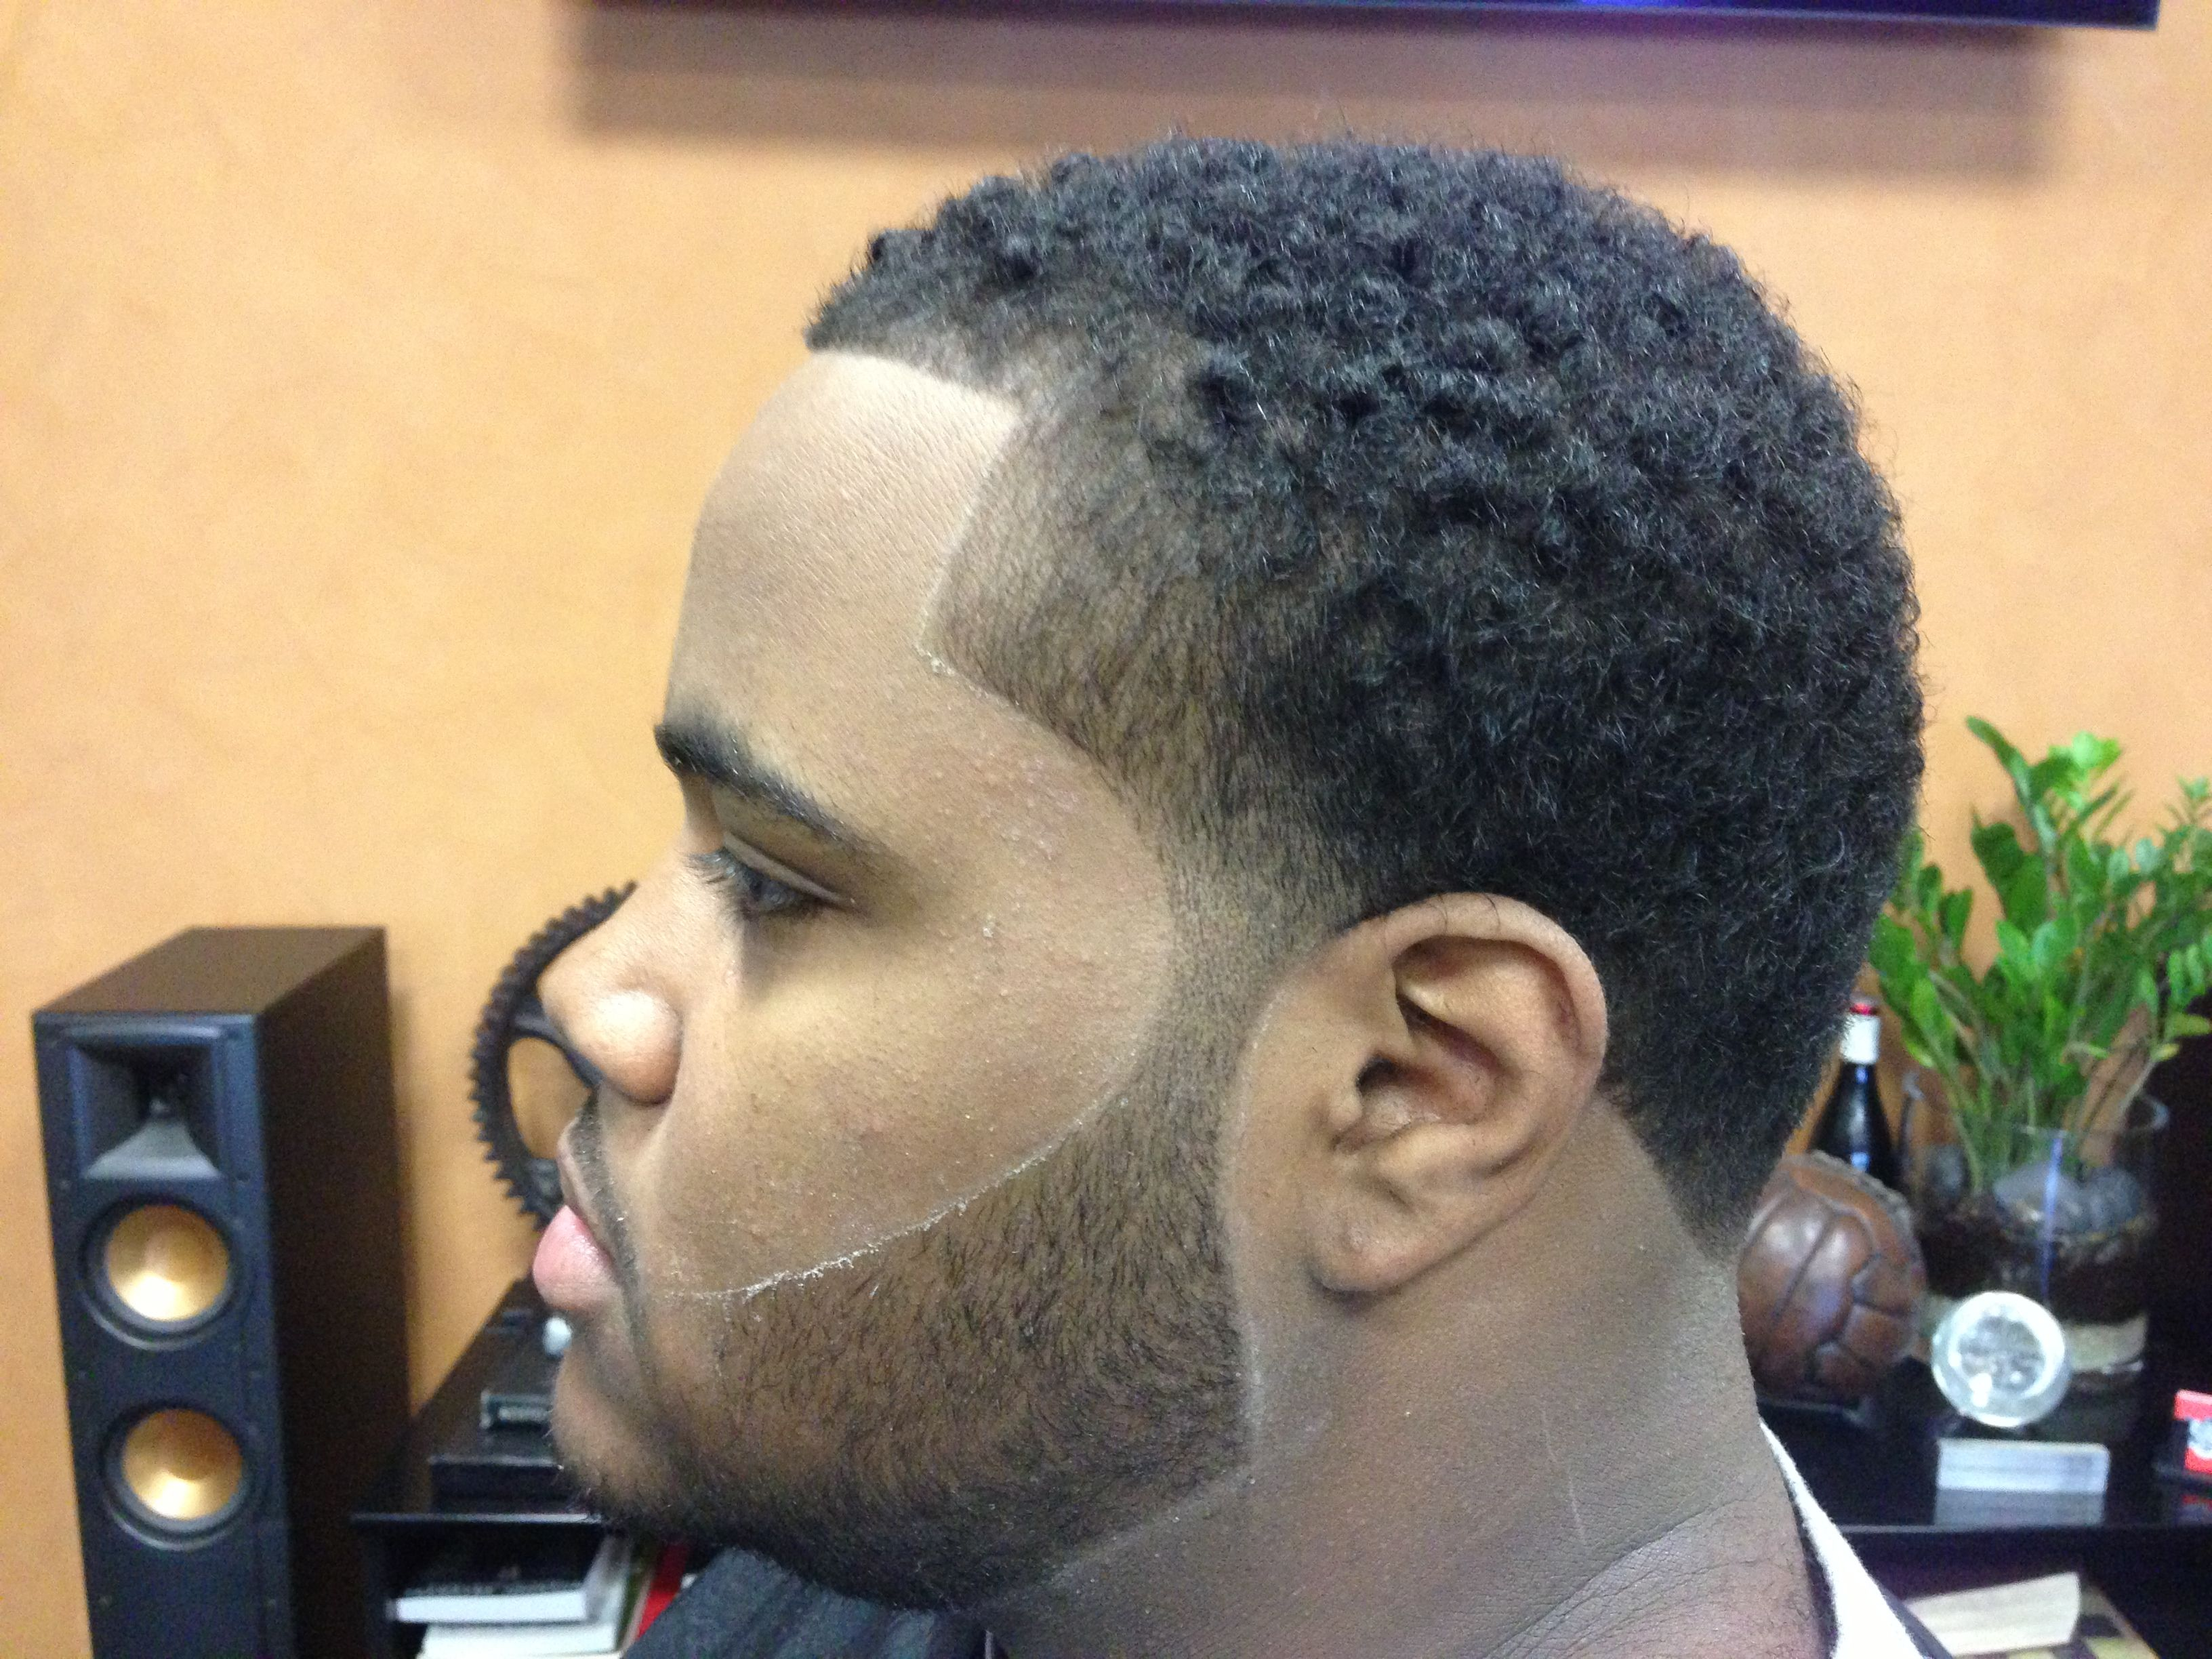 Bespoke Barbershop 419 North Ave New Rochelle Ny 914 365 1665 Mon